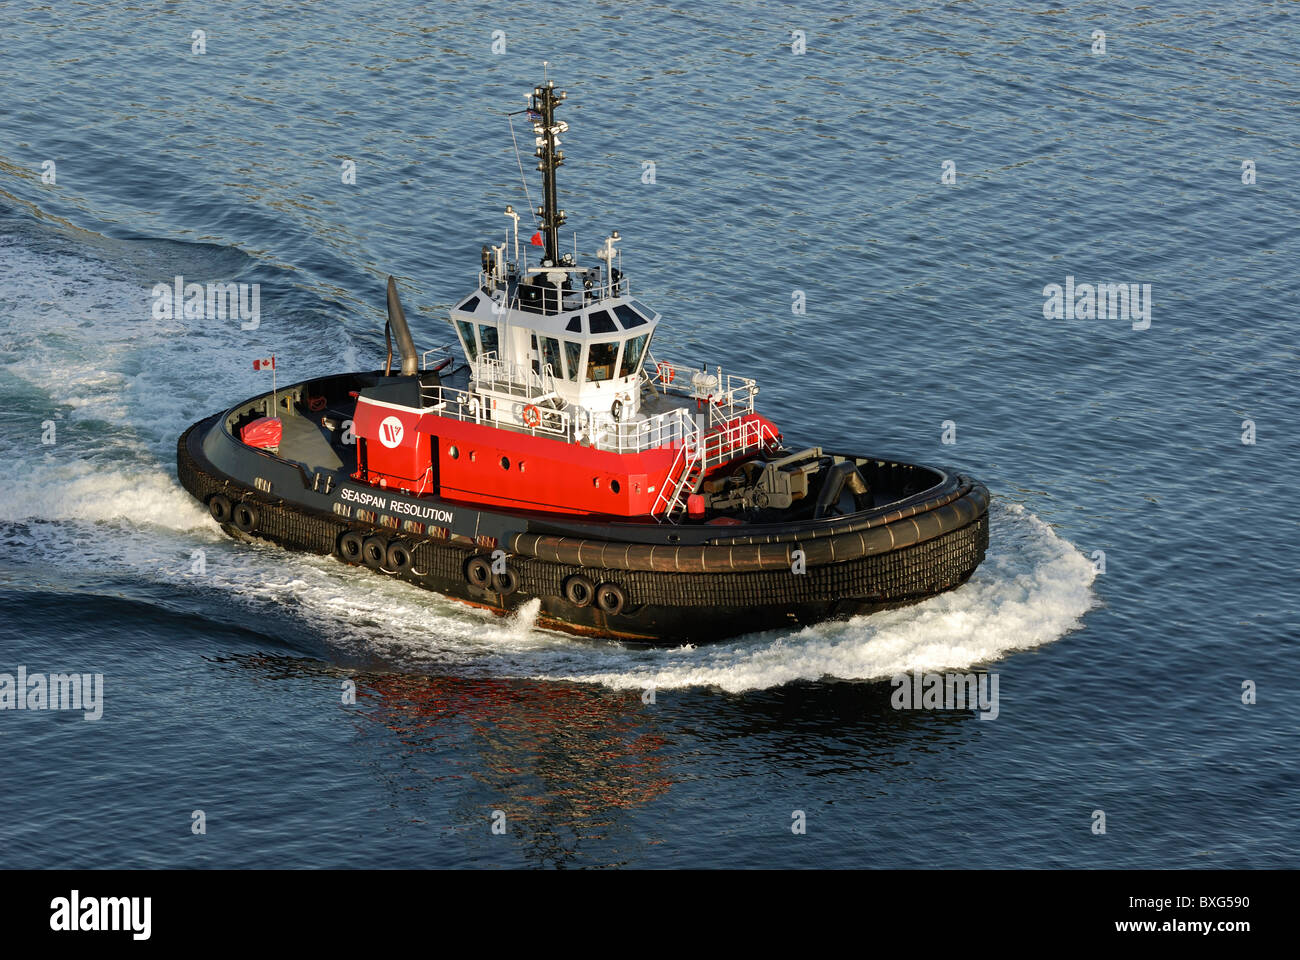 New AZ 30/80-class terminal/escort tug, Seaspan Resolution is a state of the art  $18 million, 28 Meter tug based - Stock Image